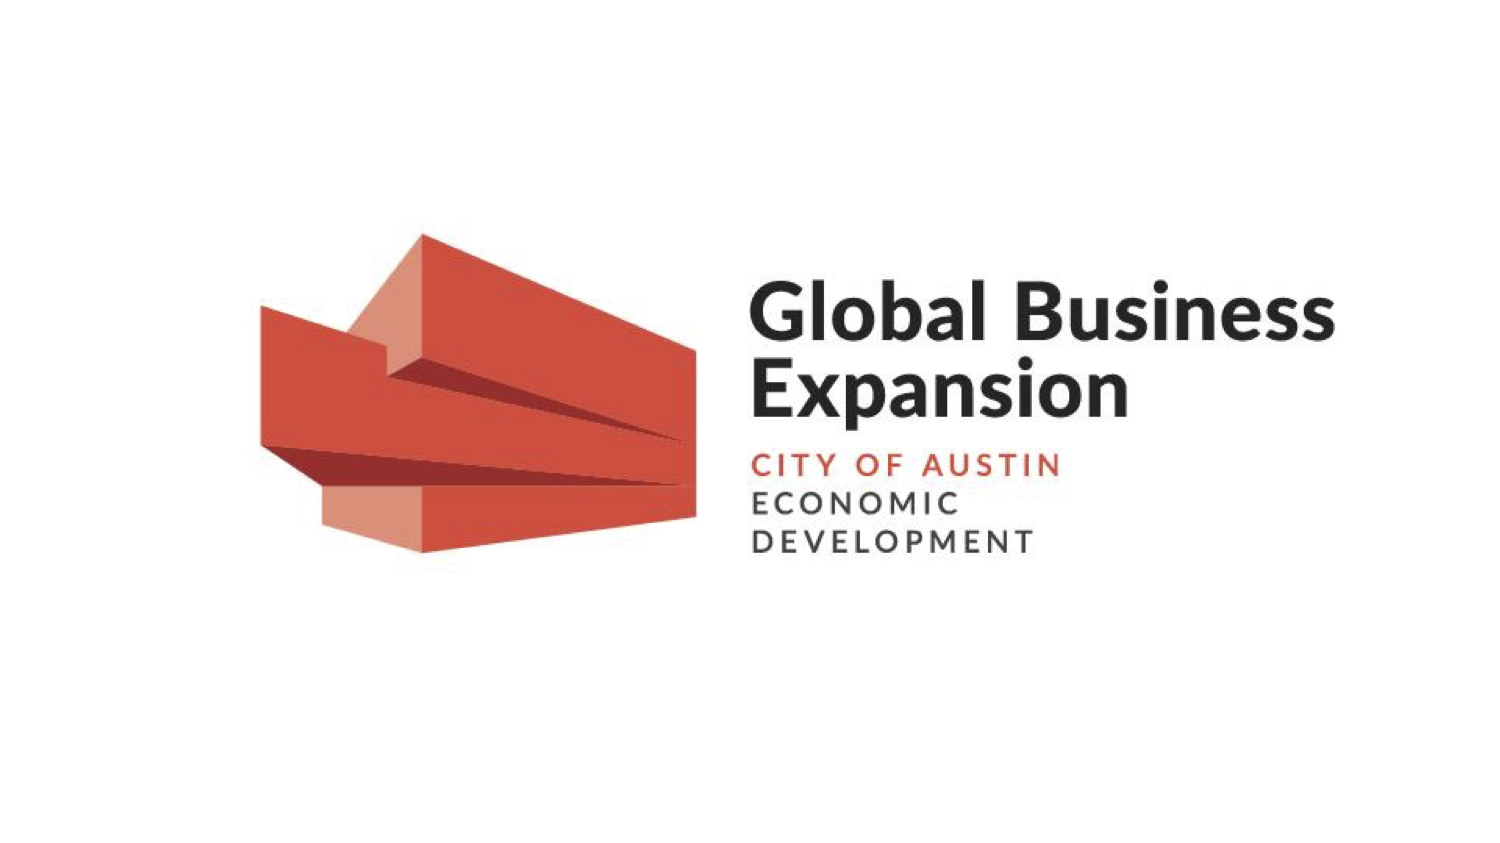 City of Austin - Global Business Expansion